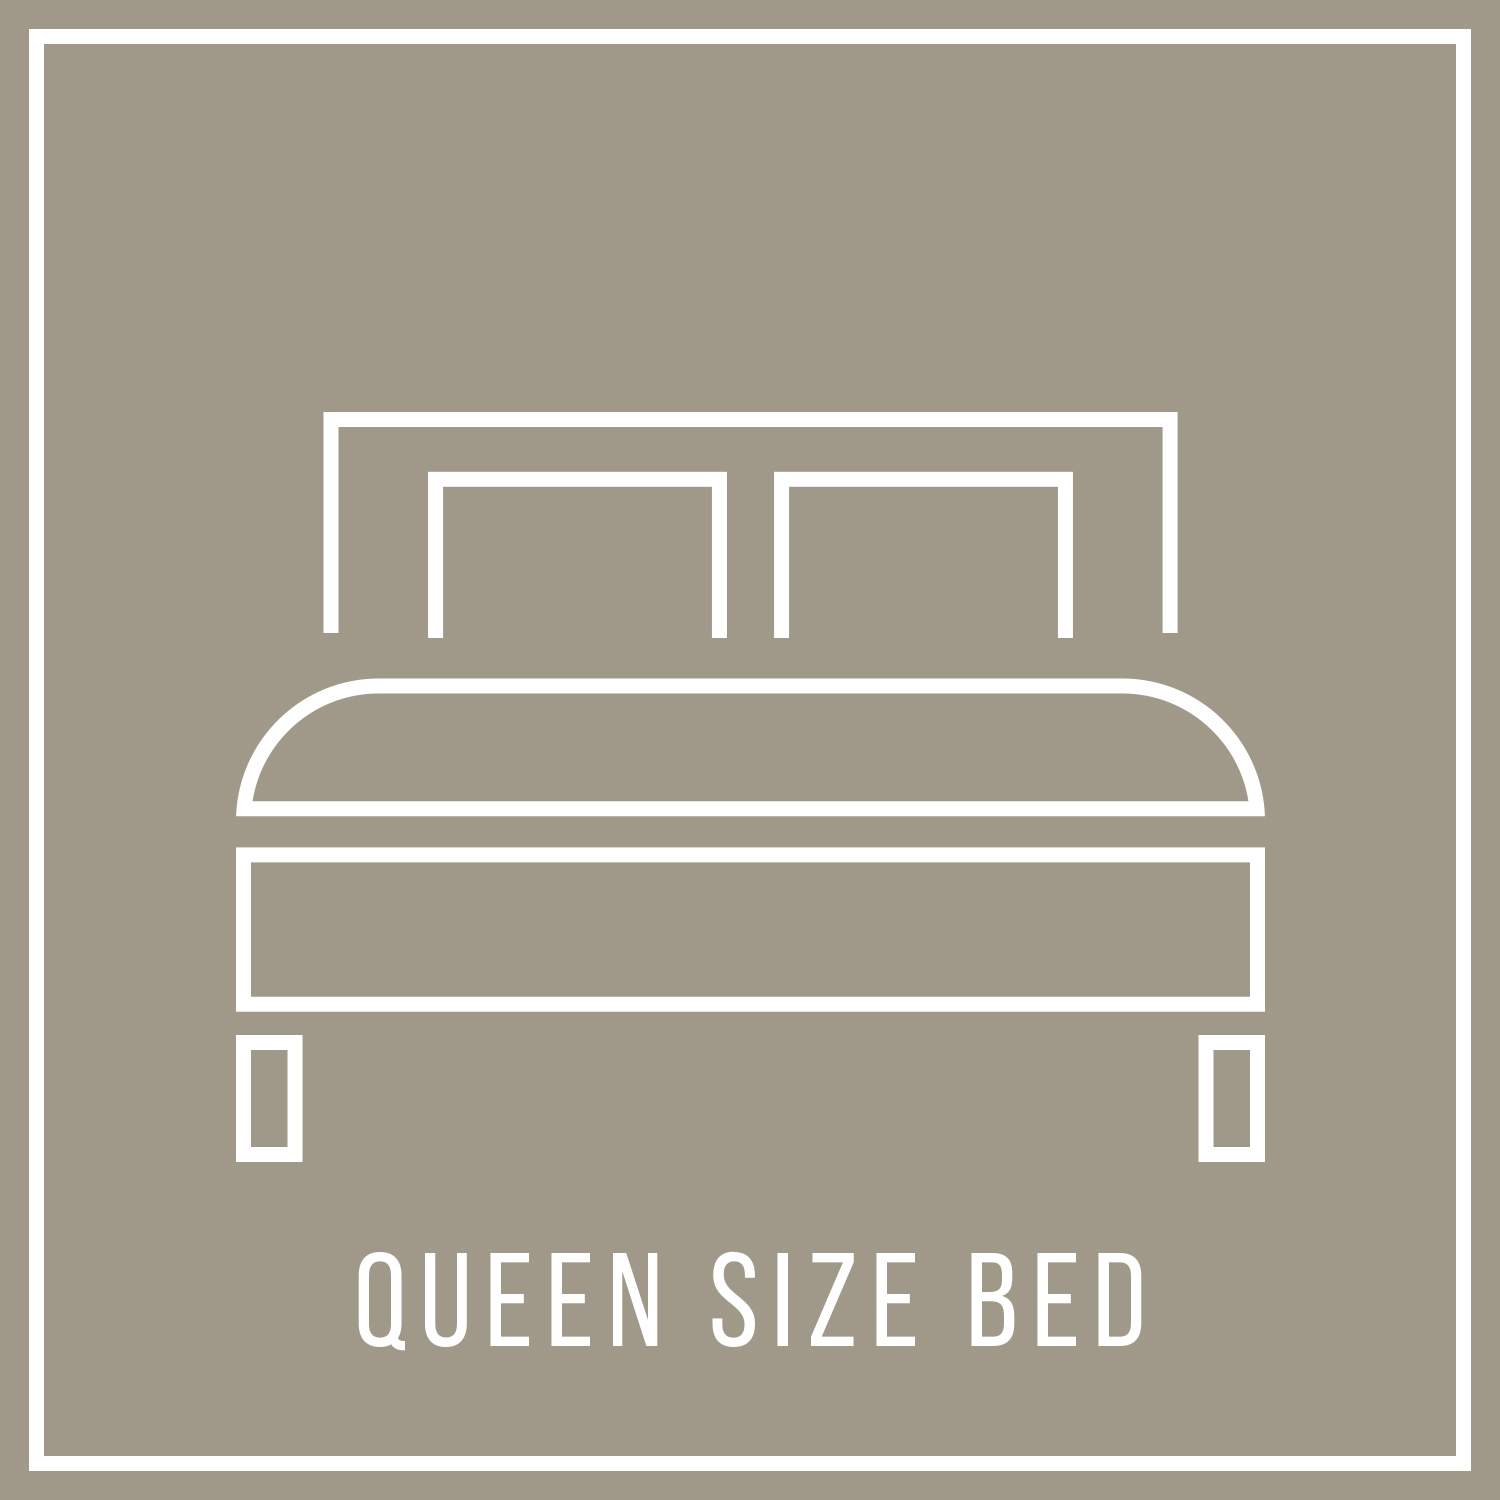 aya-kapadokya-room-features-arch-suite-square-queen-size-bed